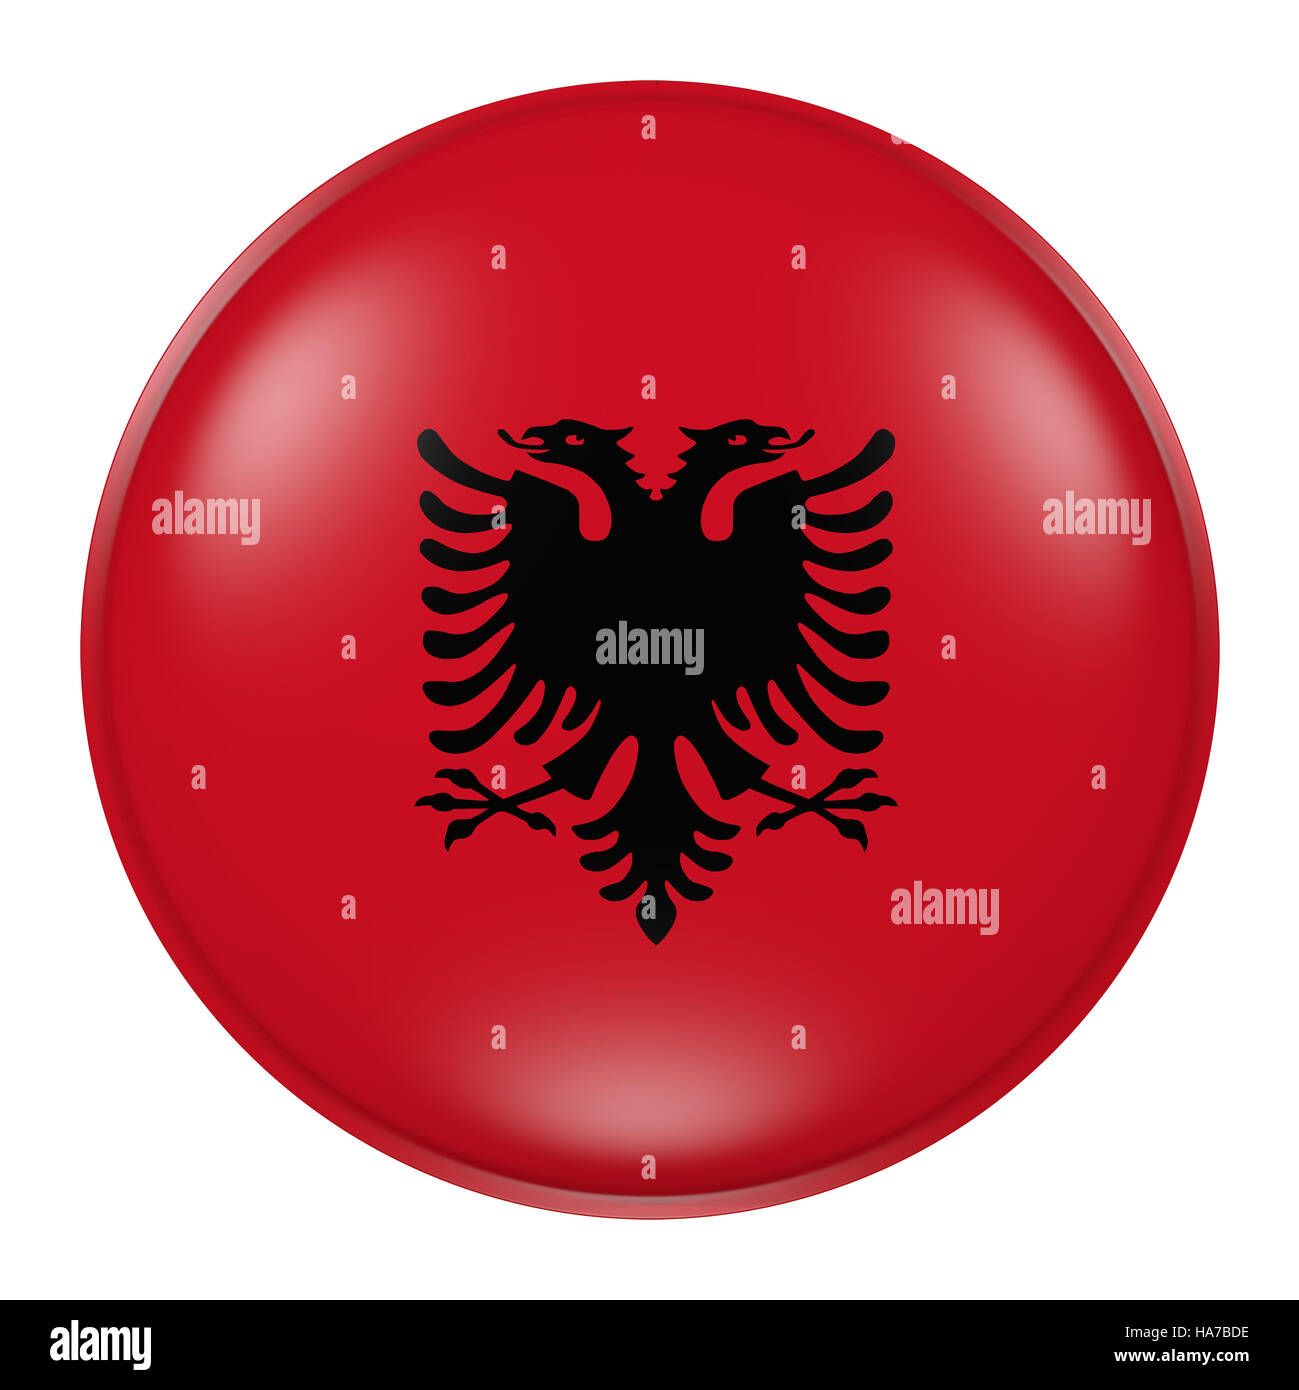 3d rendering of  Albania flag on a button - Stock Image